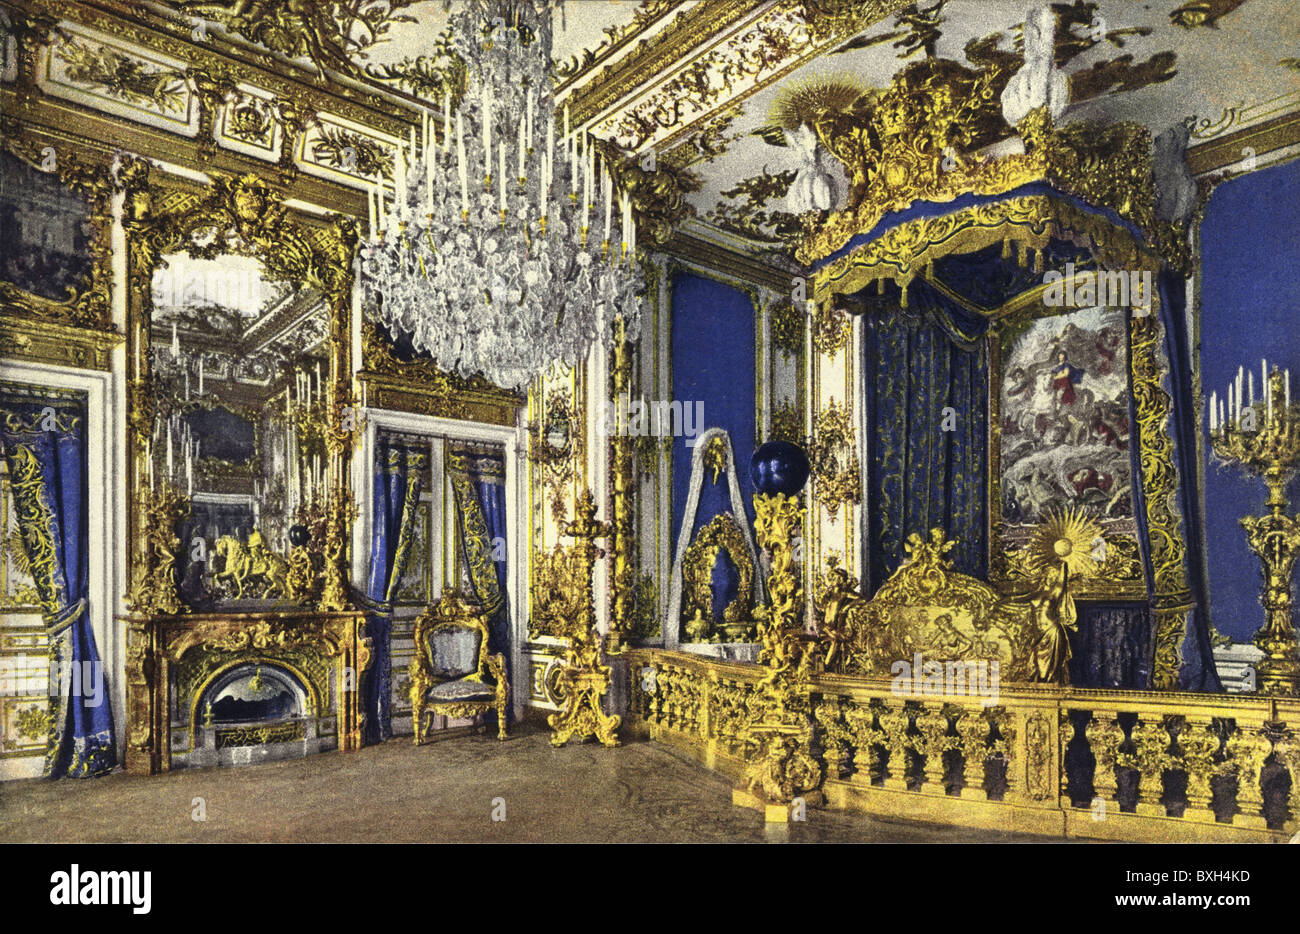 Geography / Travel, Germany, Herrenchiemsee Castle, Royal Bedroom, 1910,  Built By King Ludwig II, Louis, Pomposity, Pomp, Luxuri